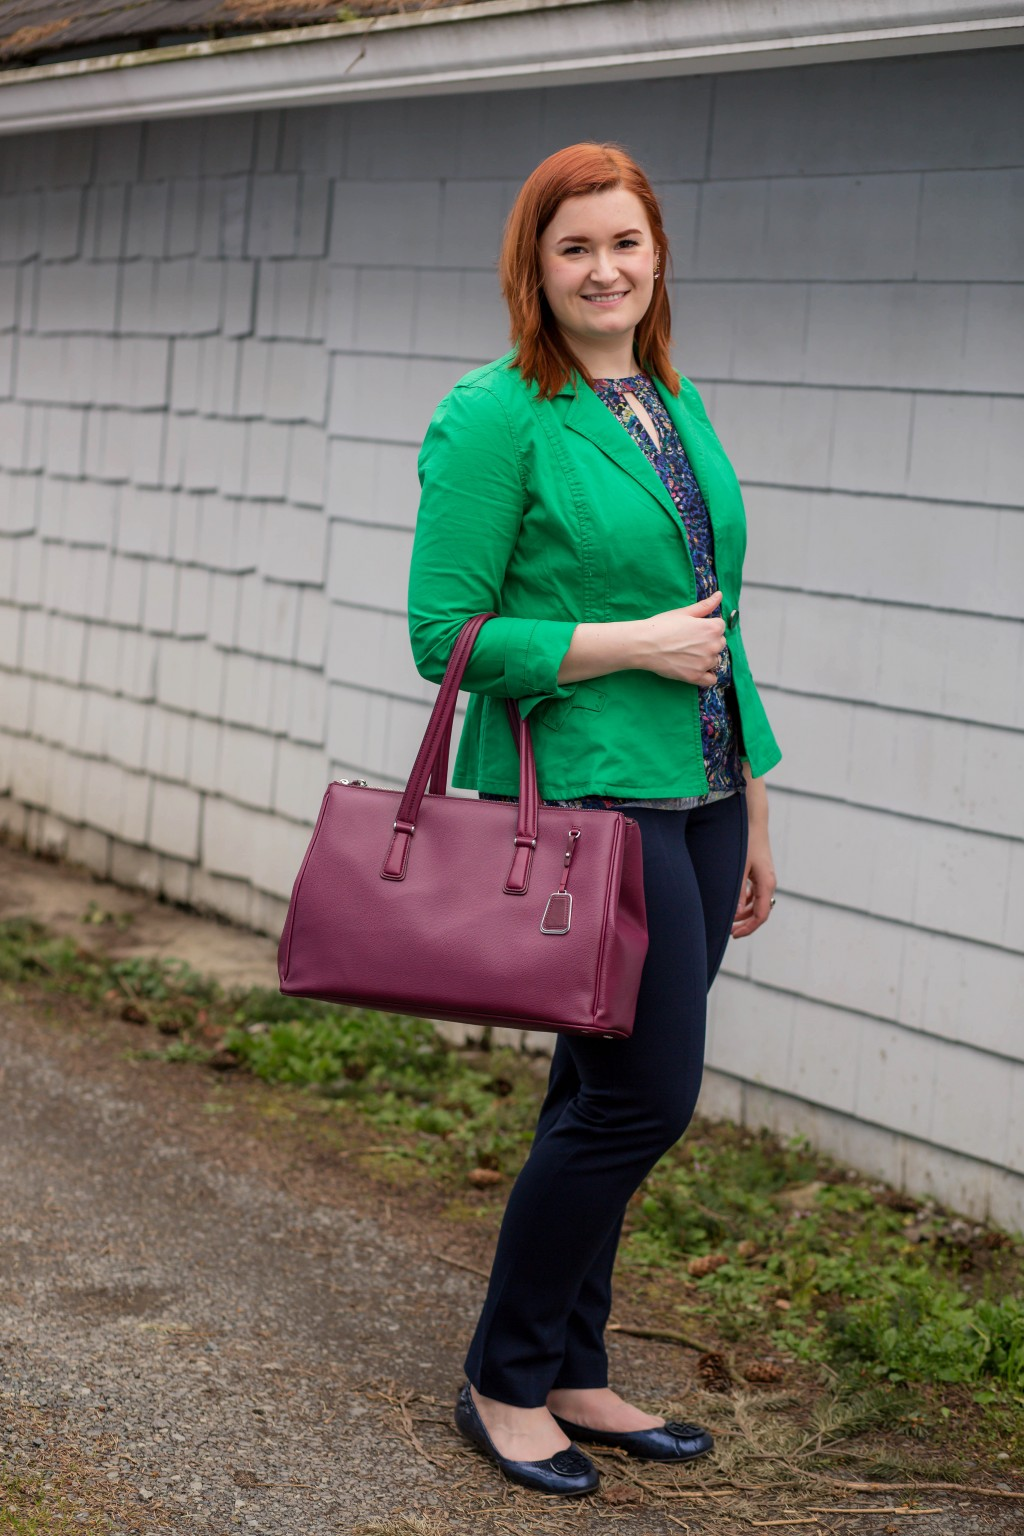 1 - Navy blue and green business casual work attire